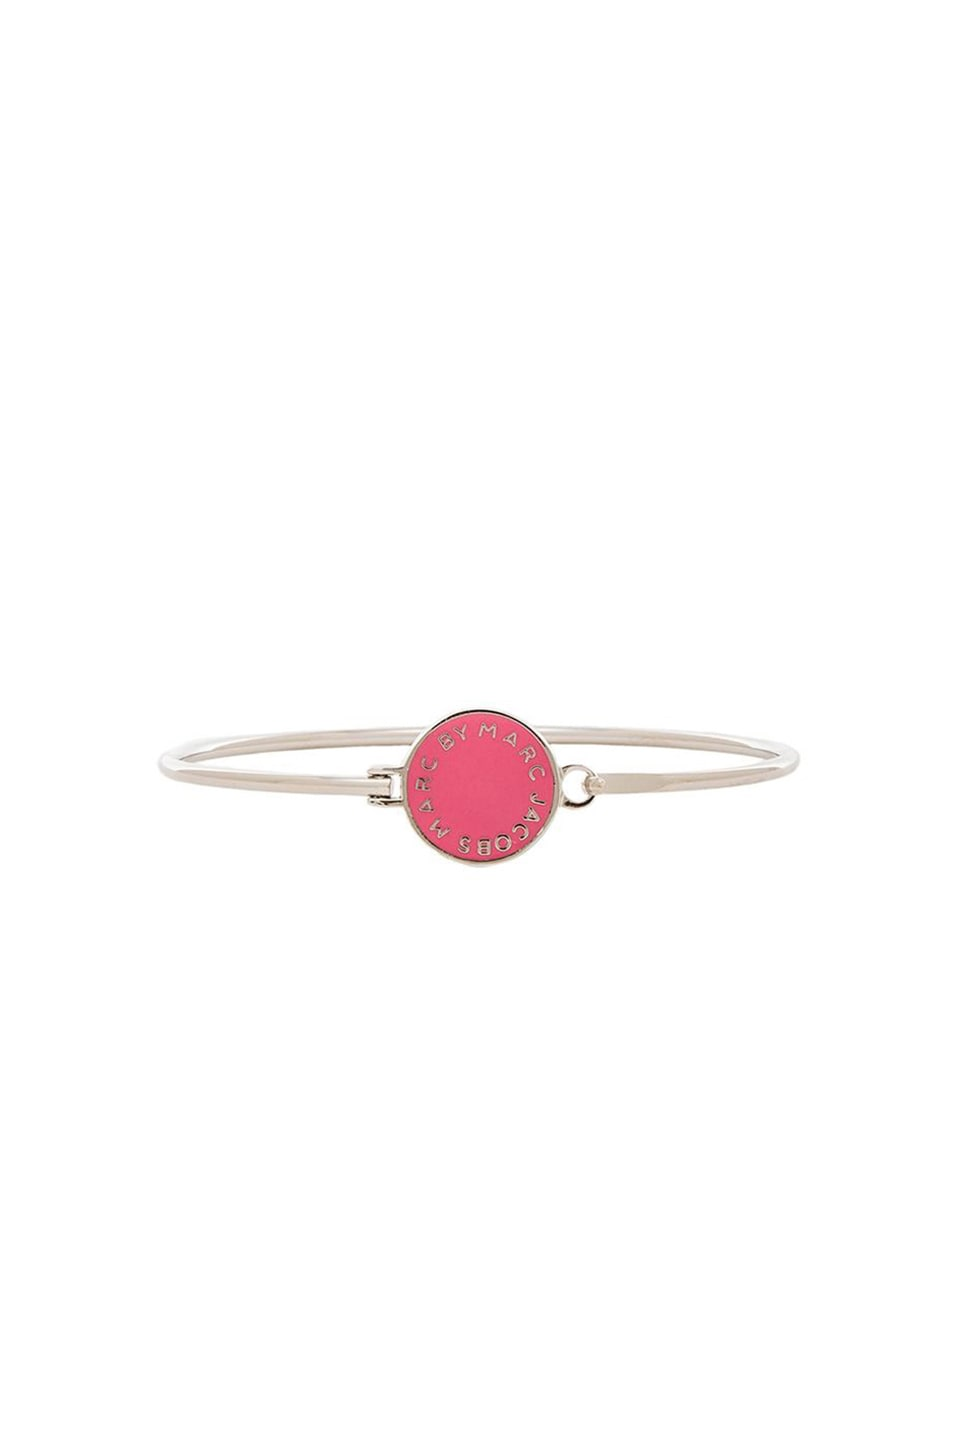 Marc by Marc Jacobs Skinny Bracelet in Bright Rose